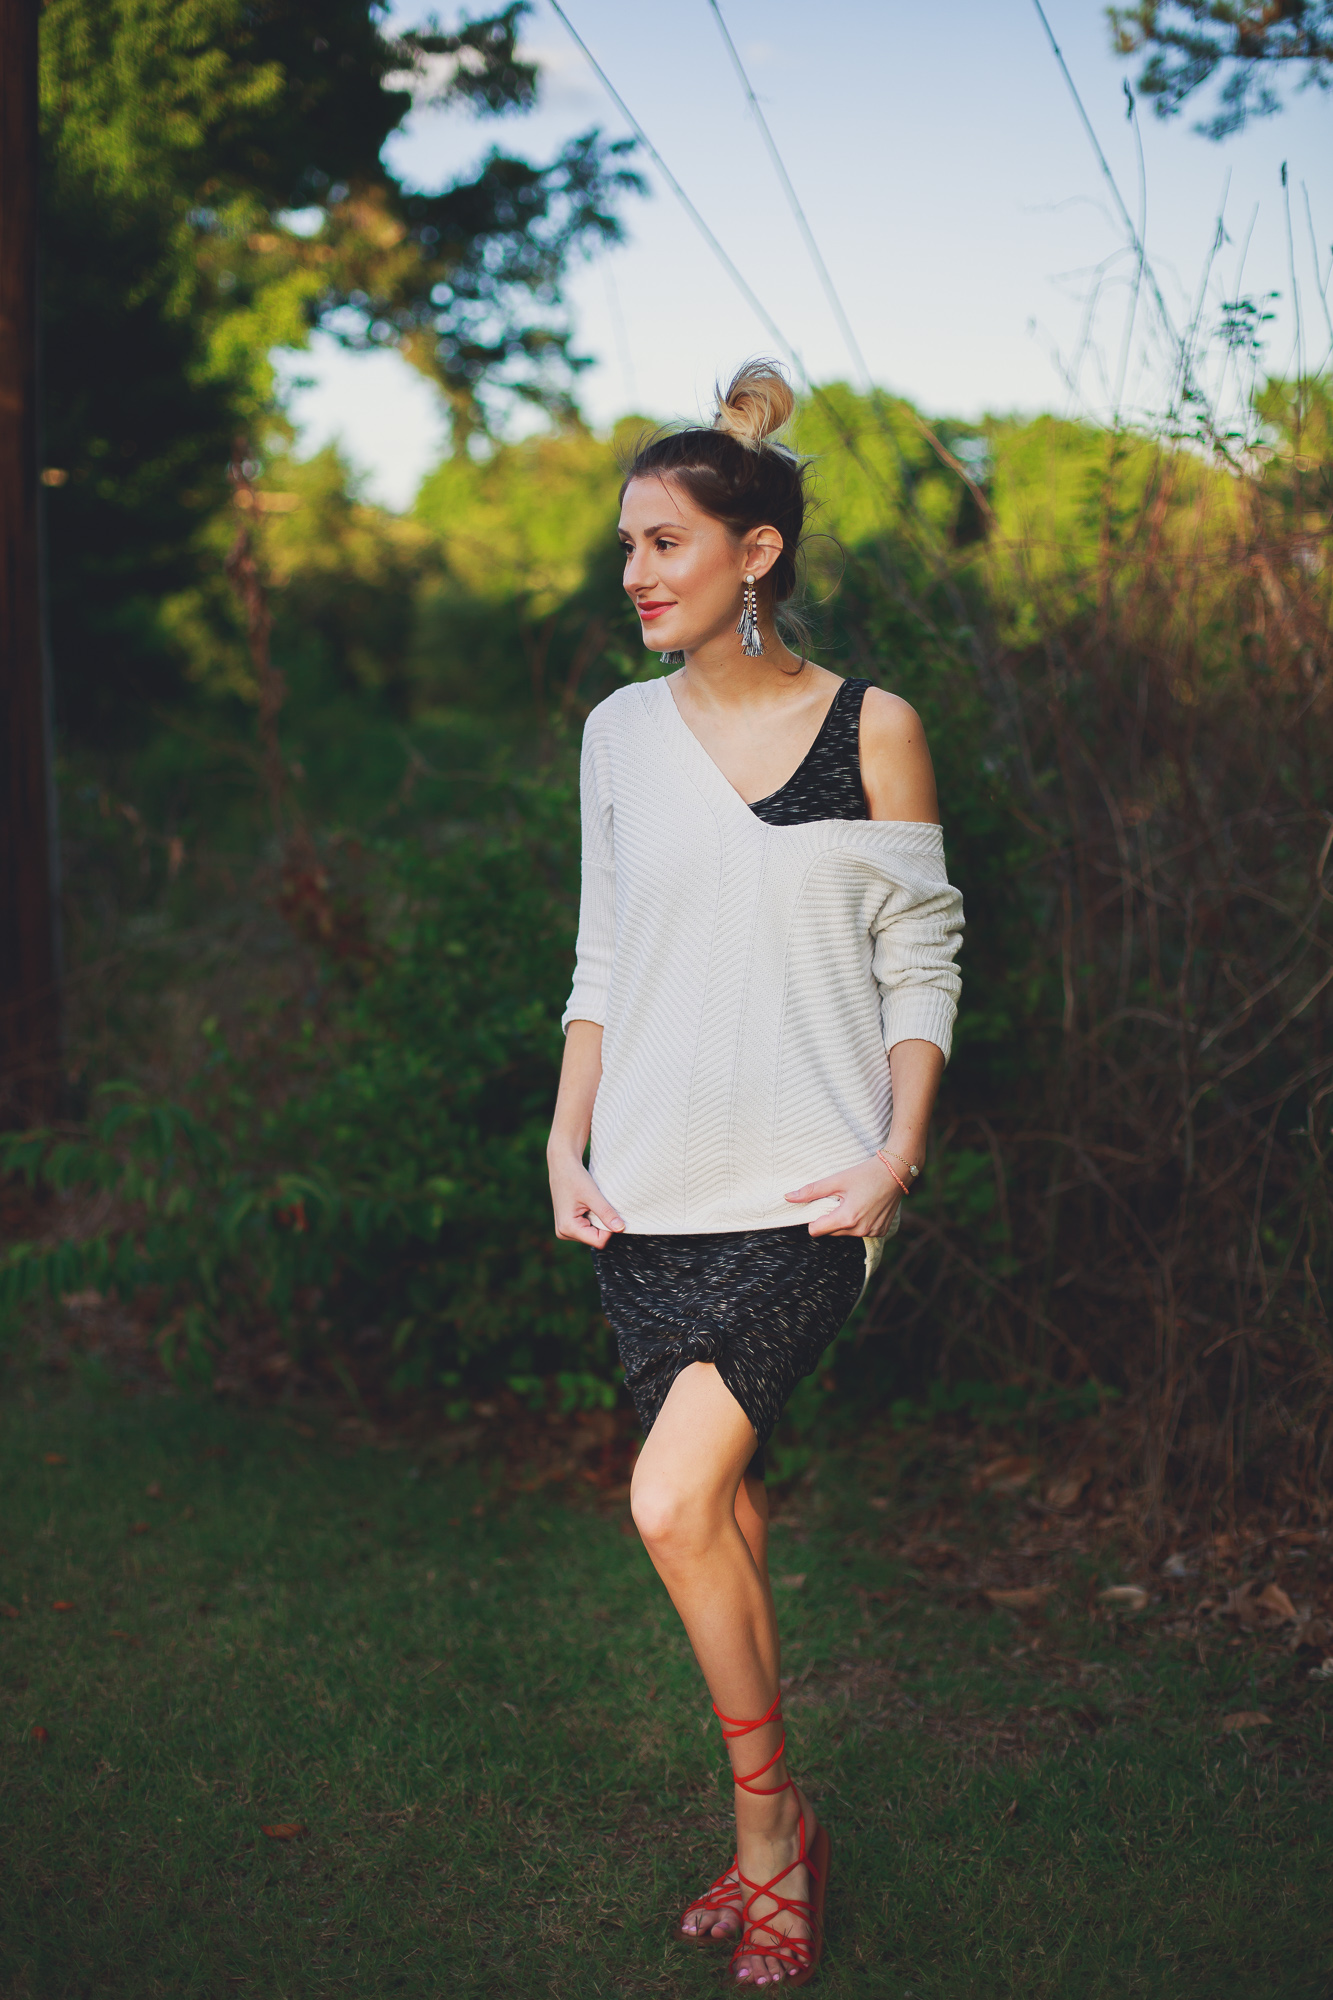 Life style, fashion, and beauty blogger / vlogger Jessica Linn  from Linn Style wearing Target maternity dress and Express sweater with Forever21 sandals and Baublebar earrings.